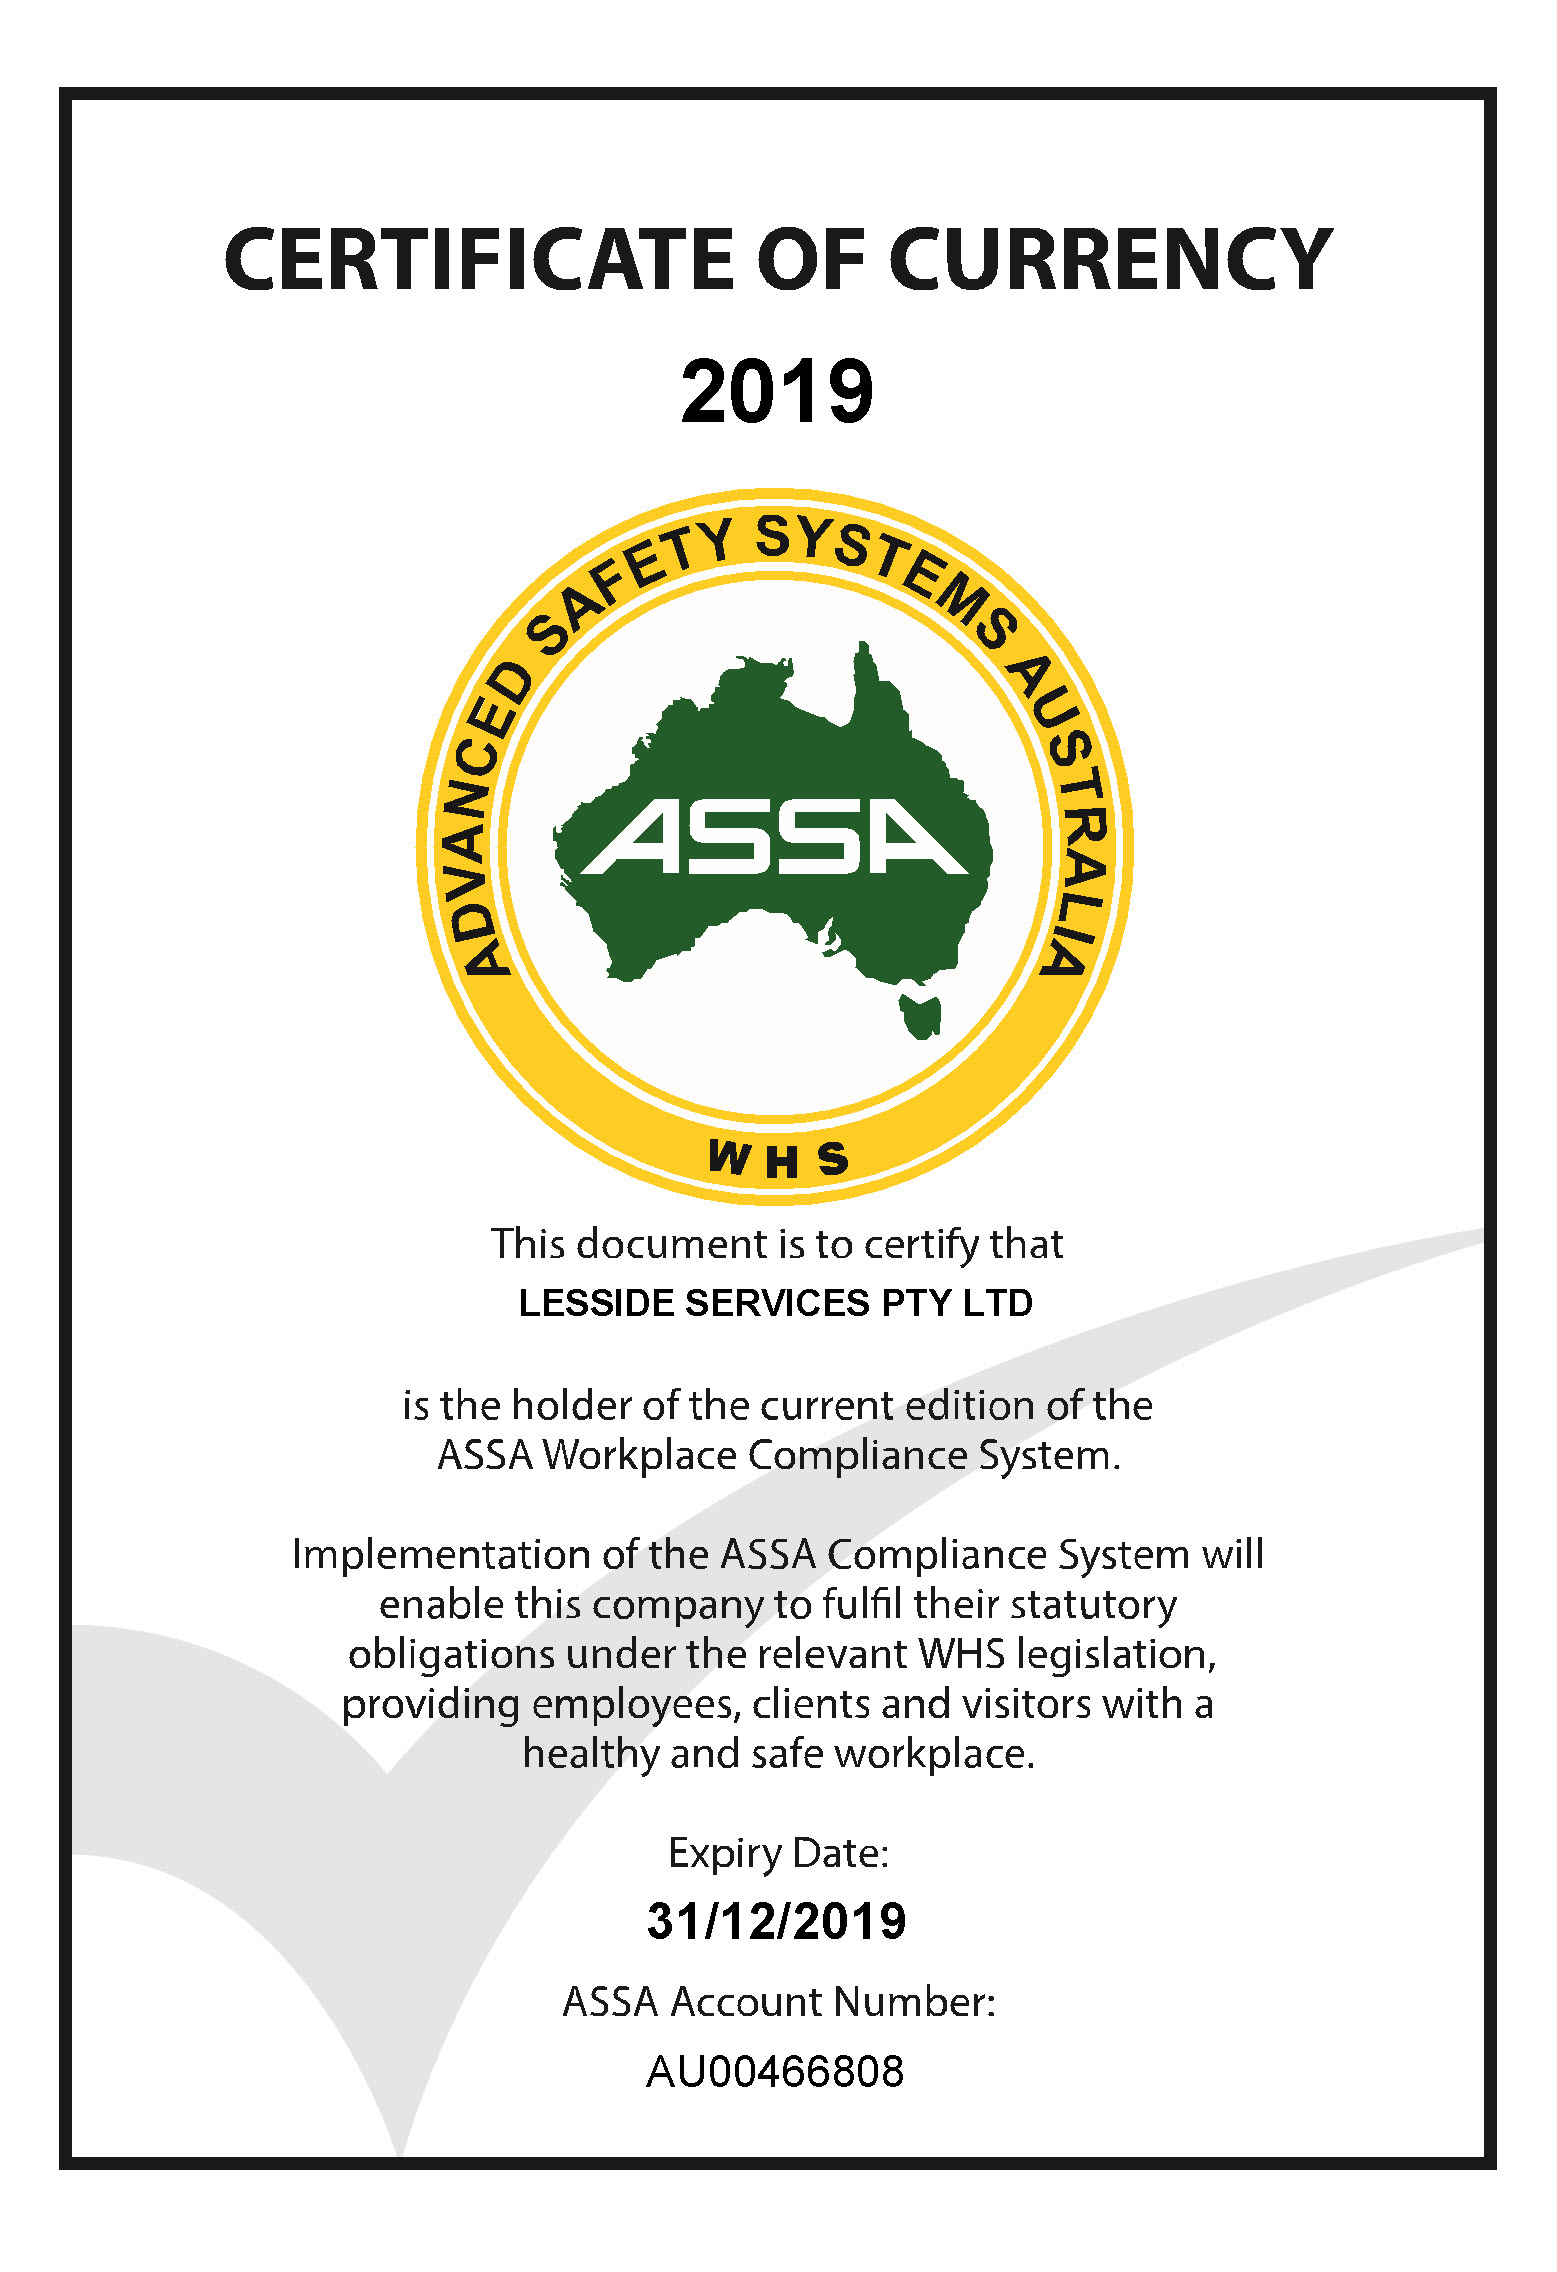 ASSA Certificate of Currency 2019